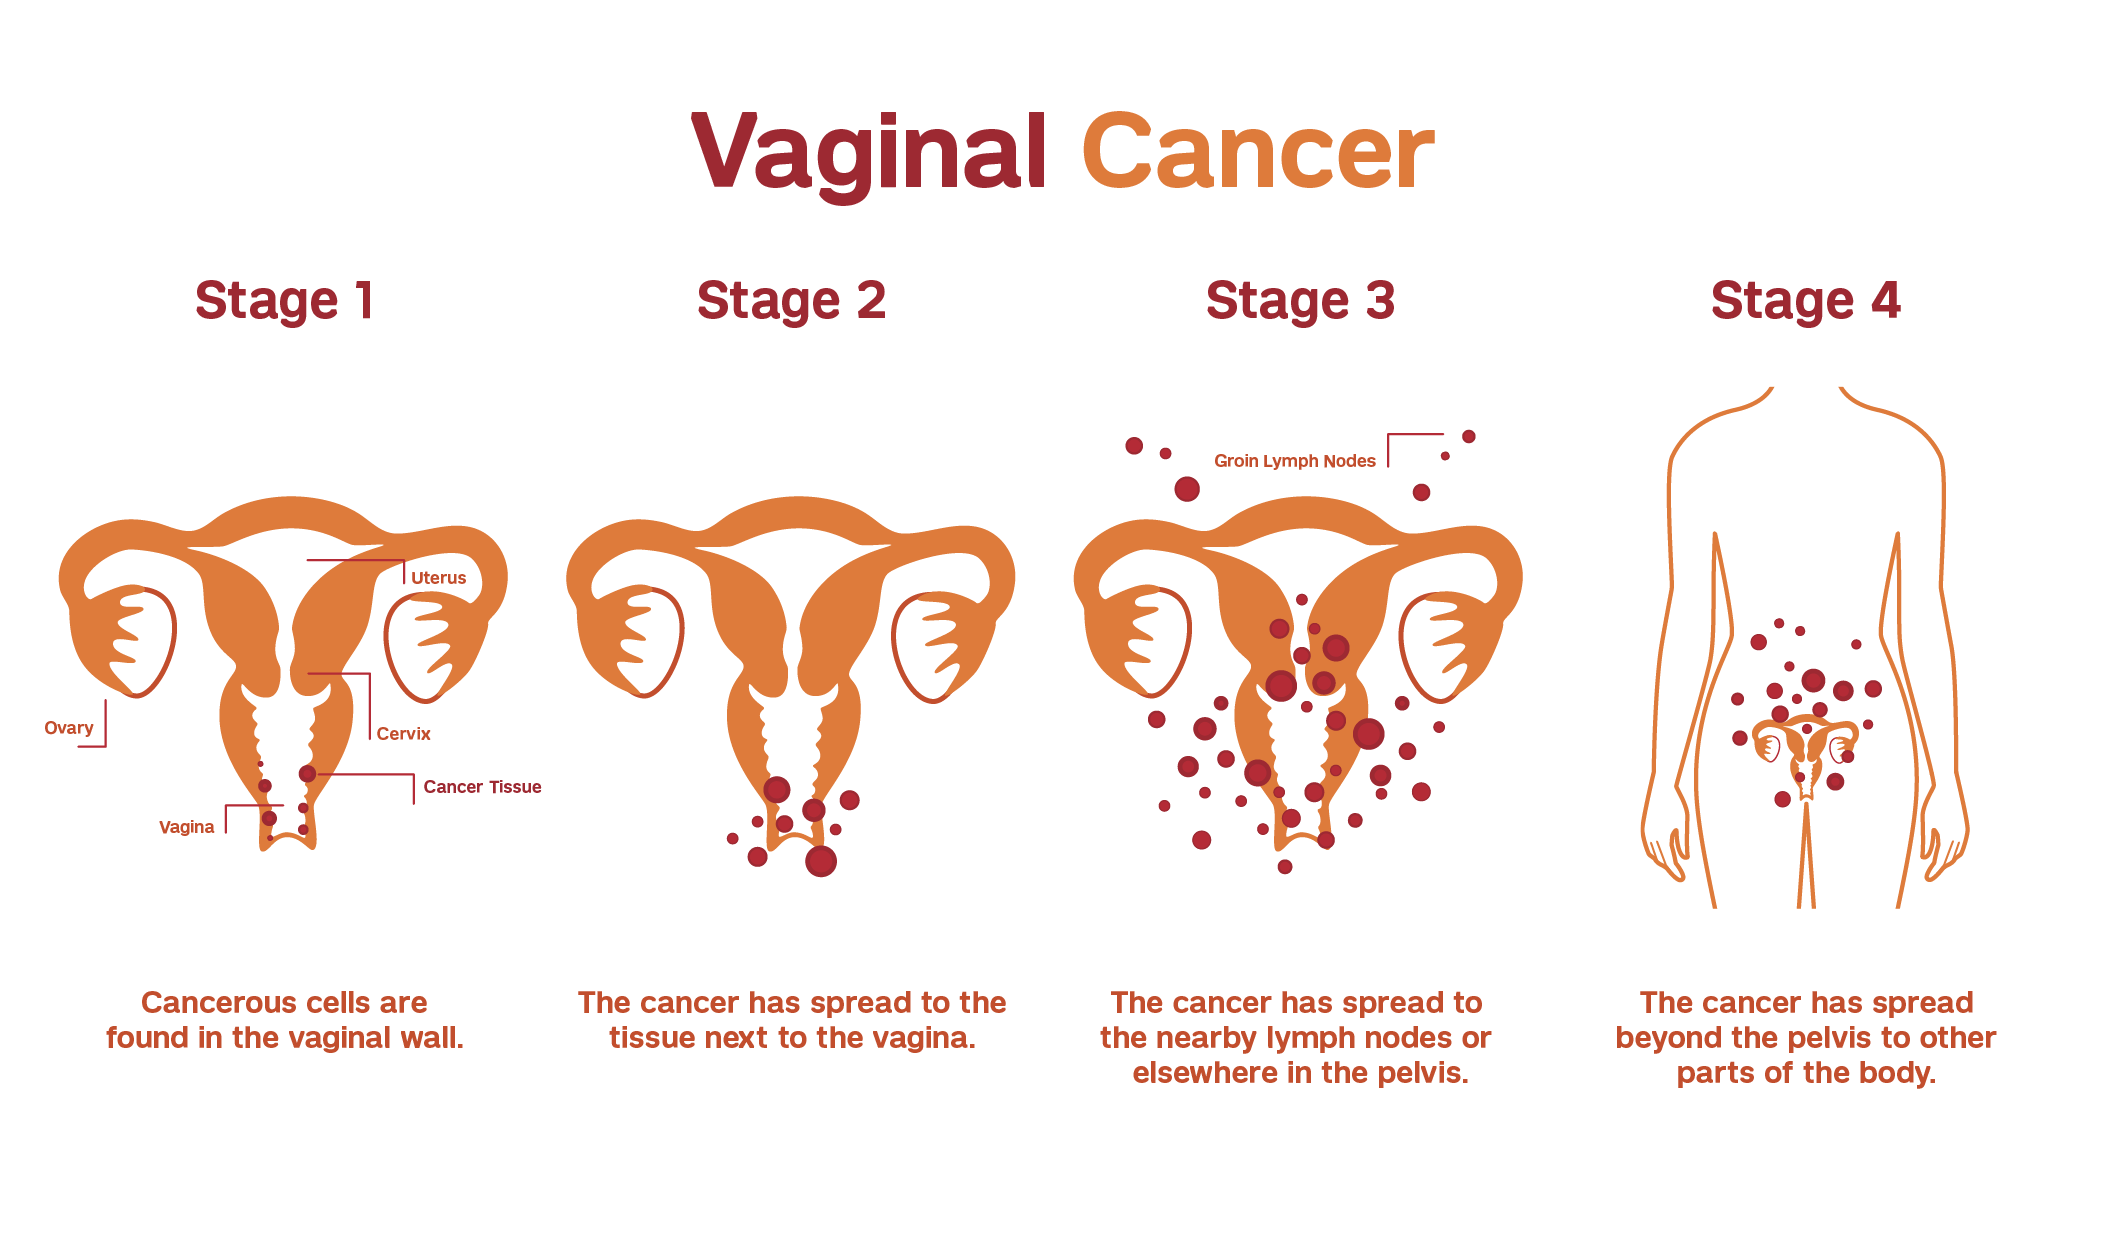 Illustration explaining the staging of vaginal cancer